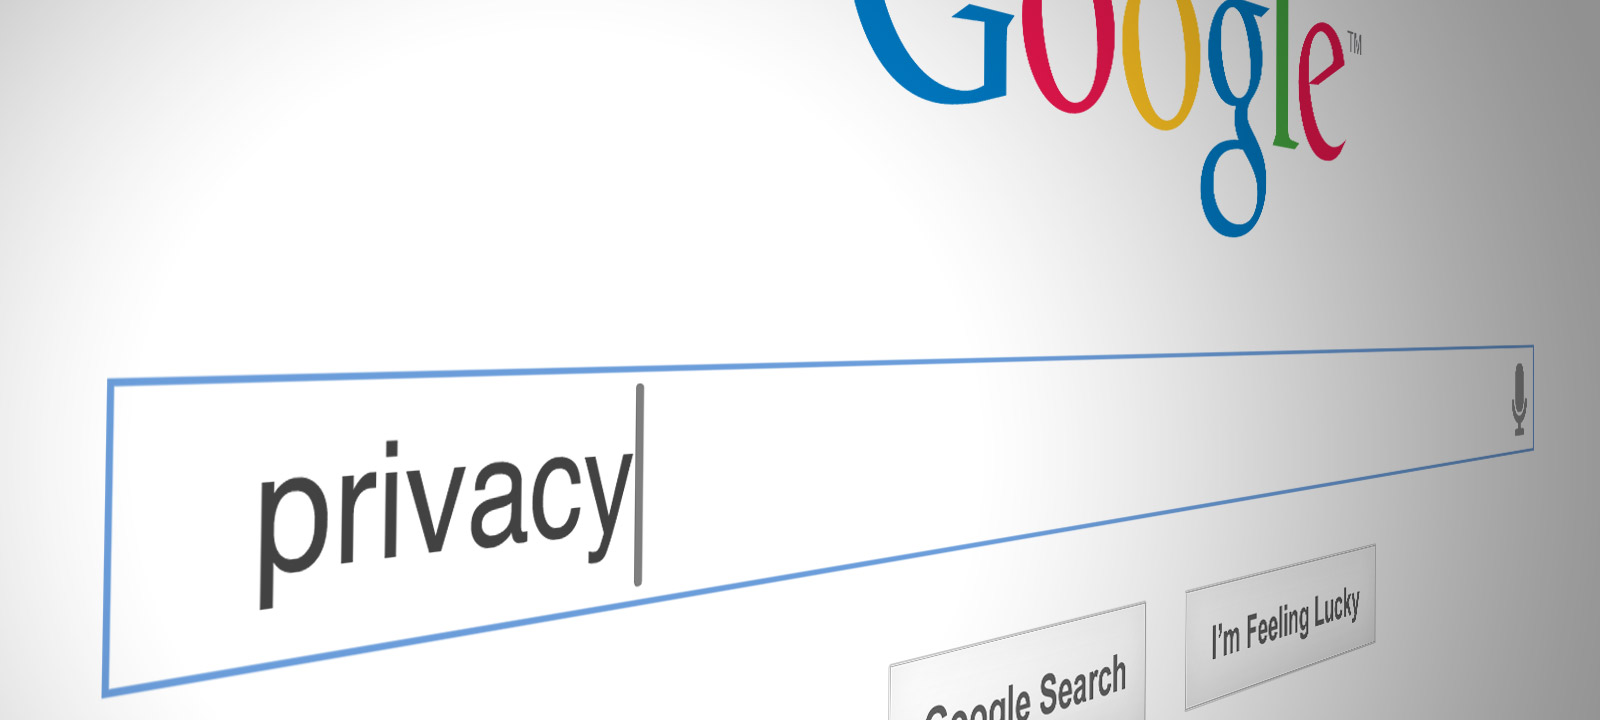 google privacy .